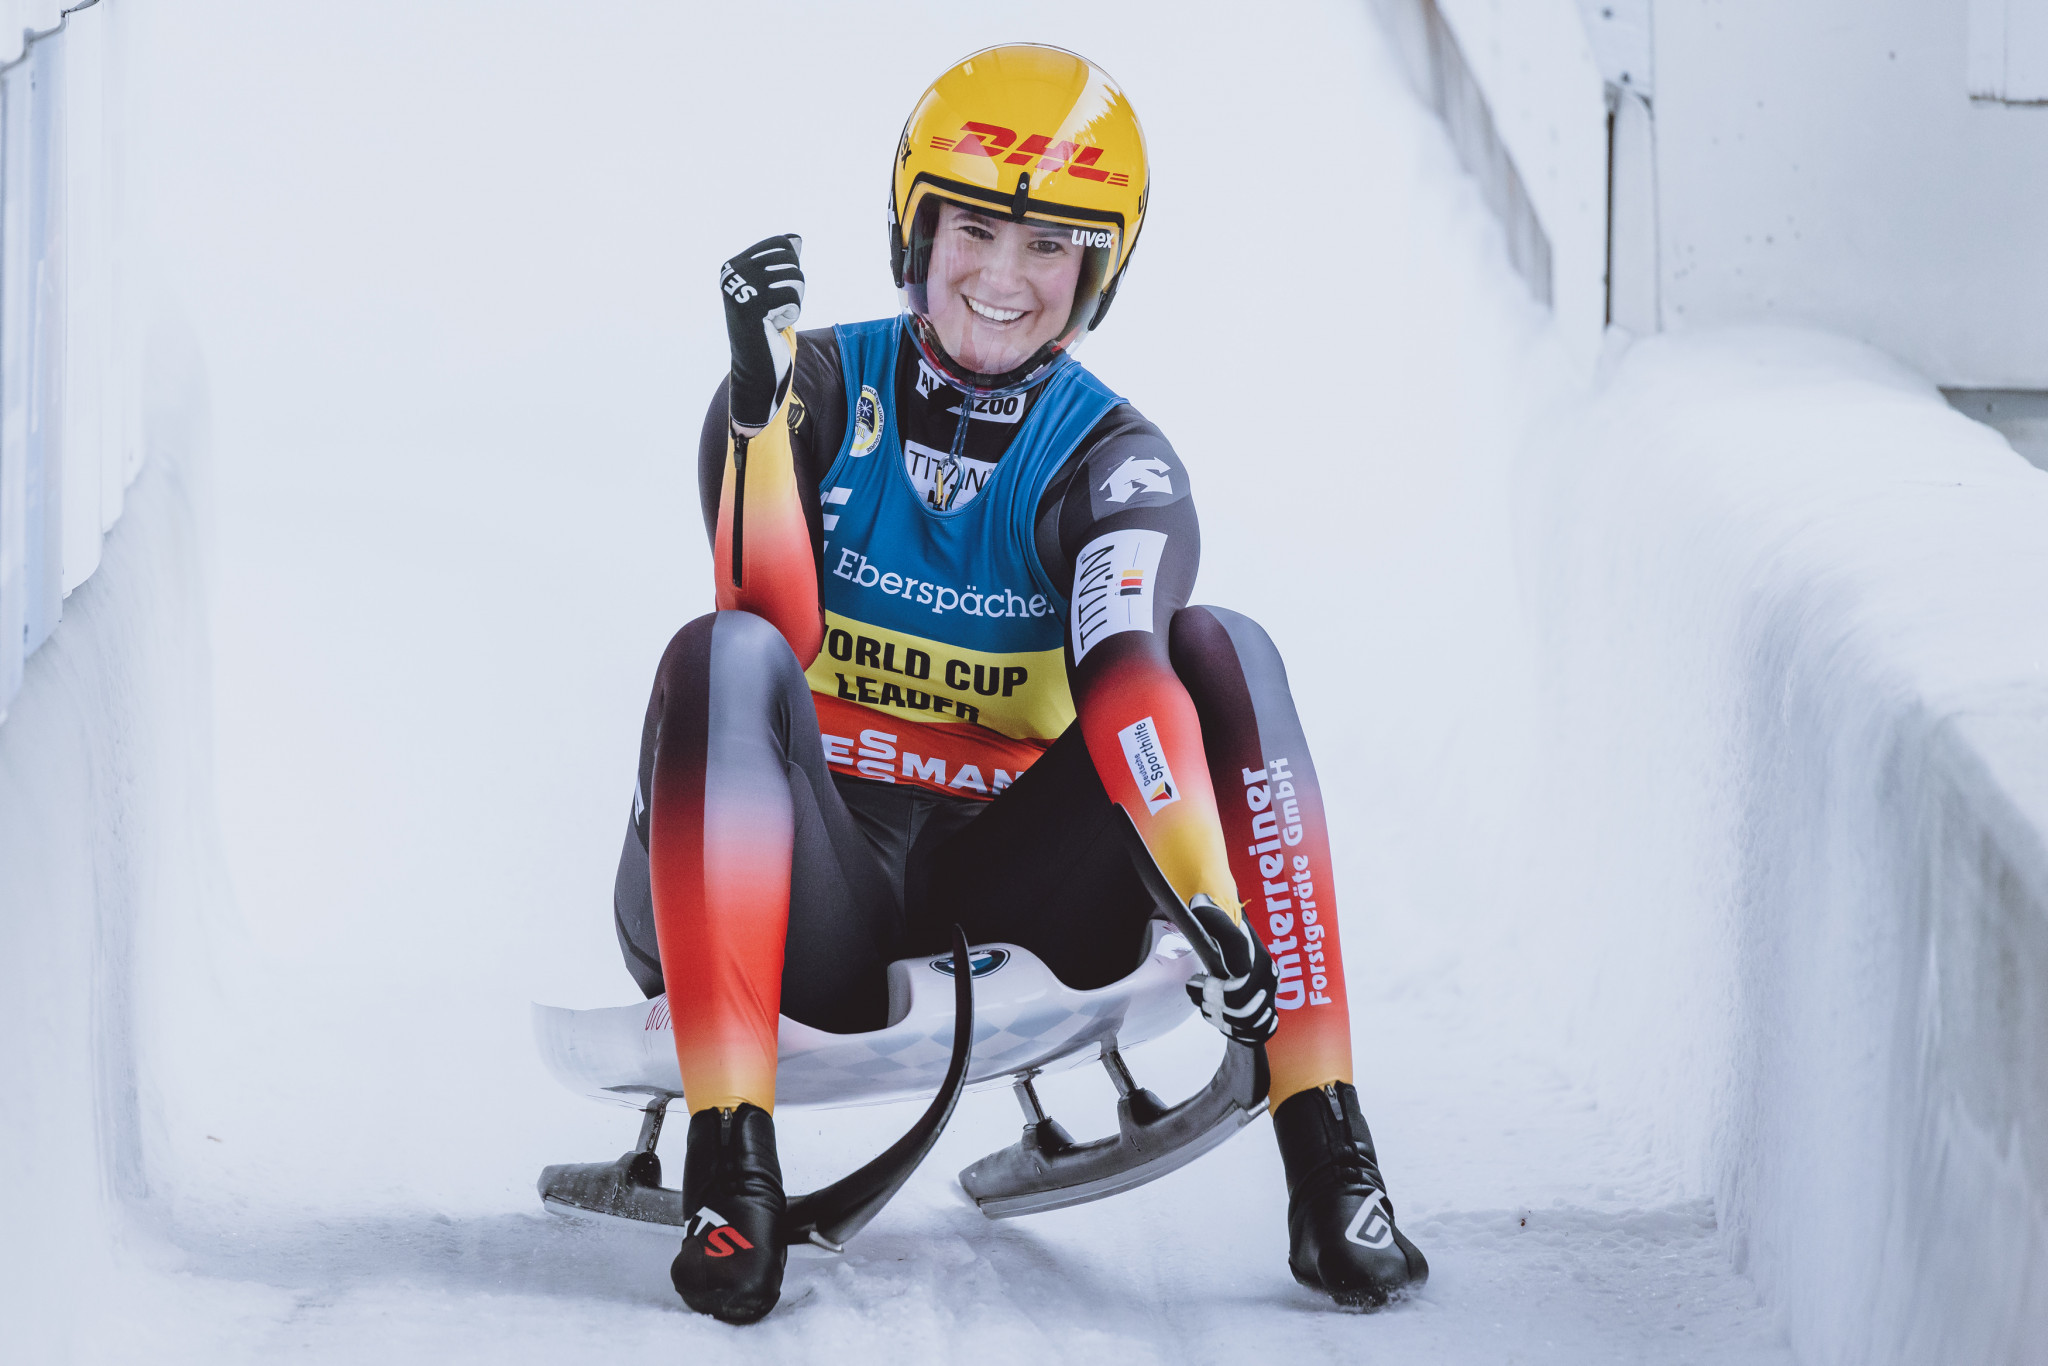 Geisenberger aiming for fifth title at Luge World Championships in Königssee